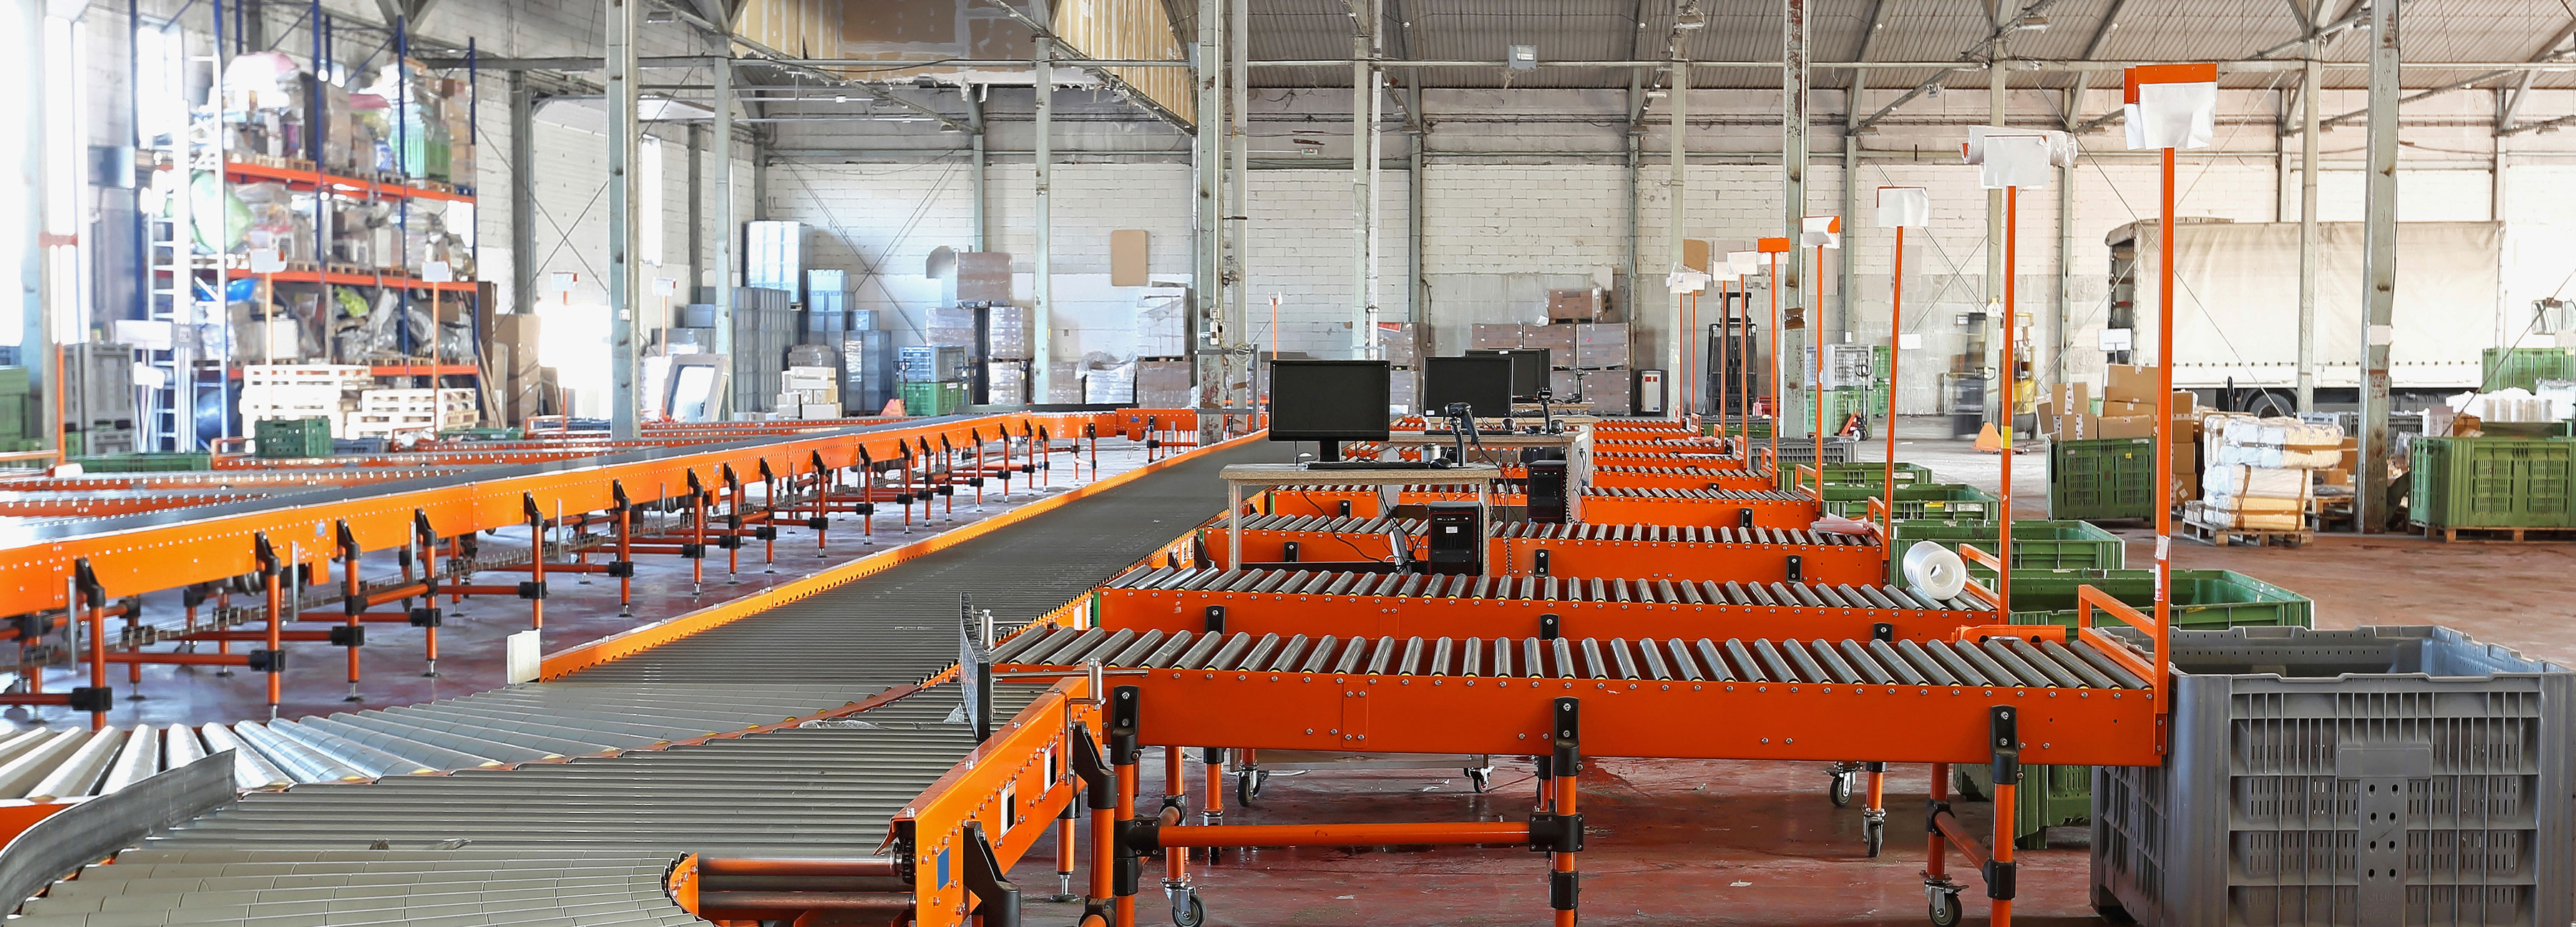 A warehouse ready for production